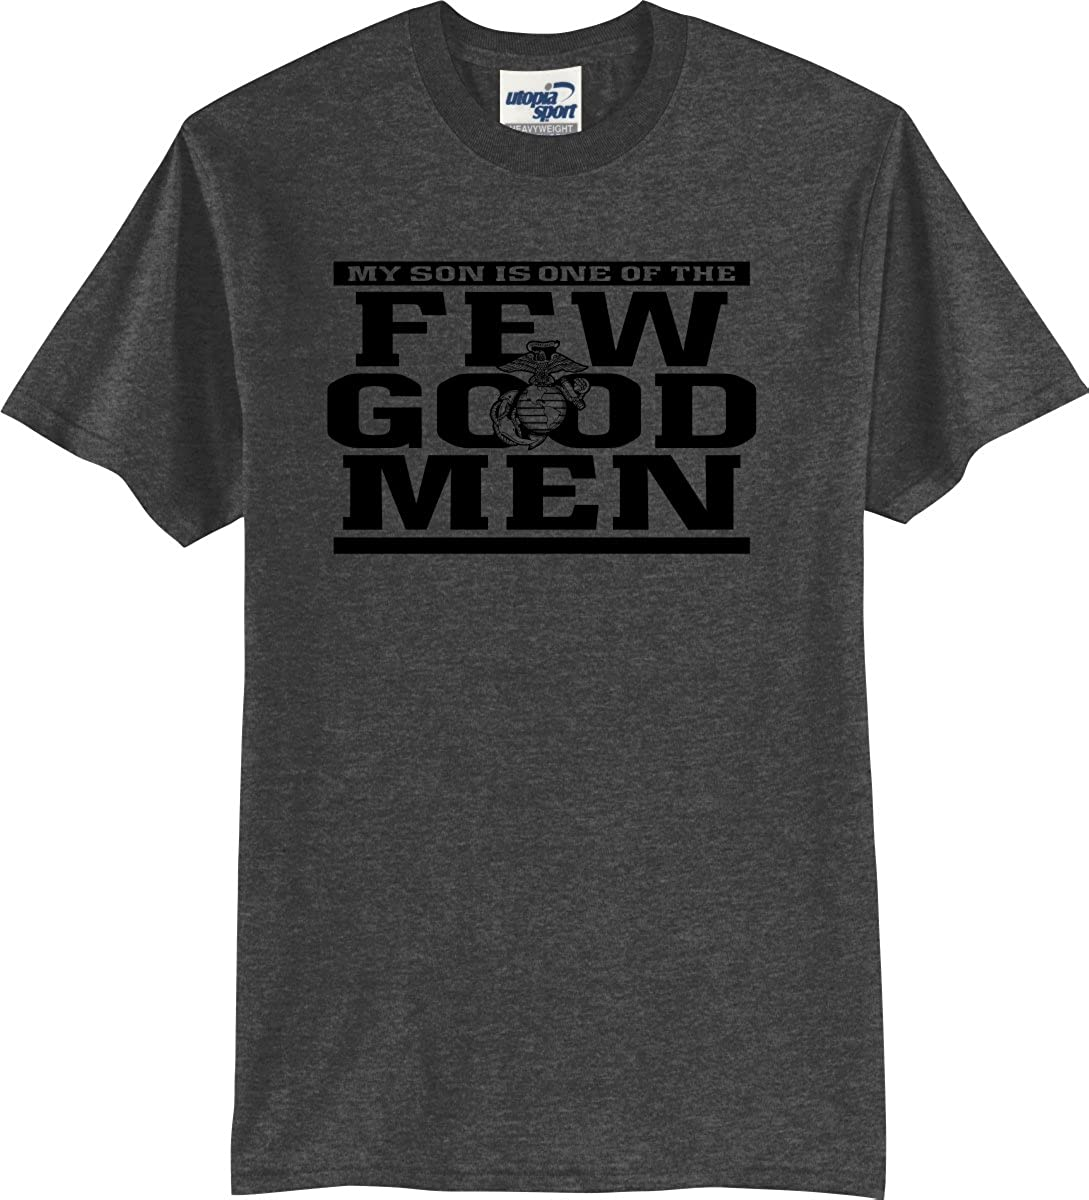 My Son is One of The Few Good Men Marines Parent T-Shirt (S-5X) 71Hf4ksO8lL